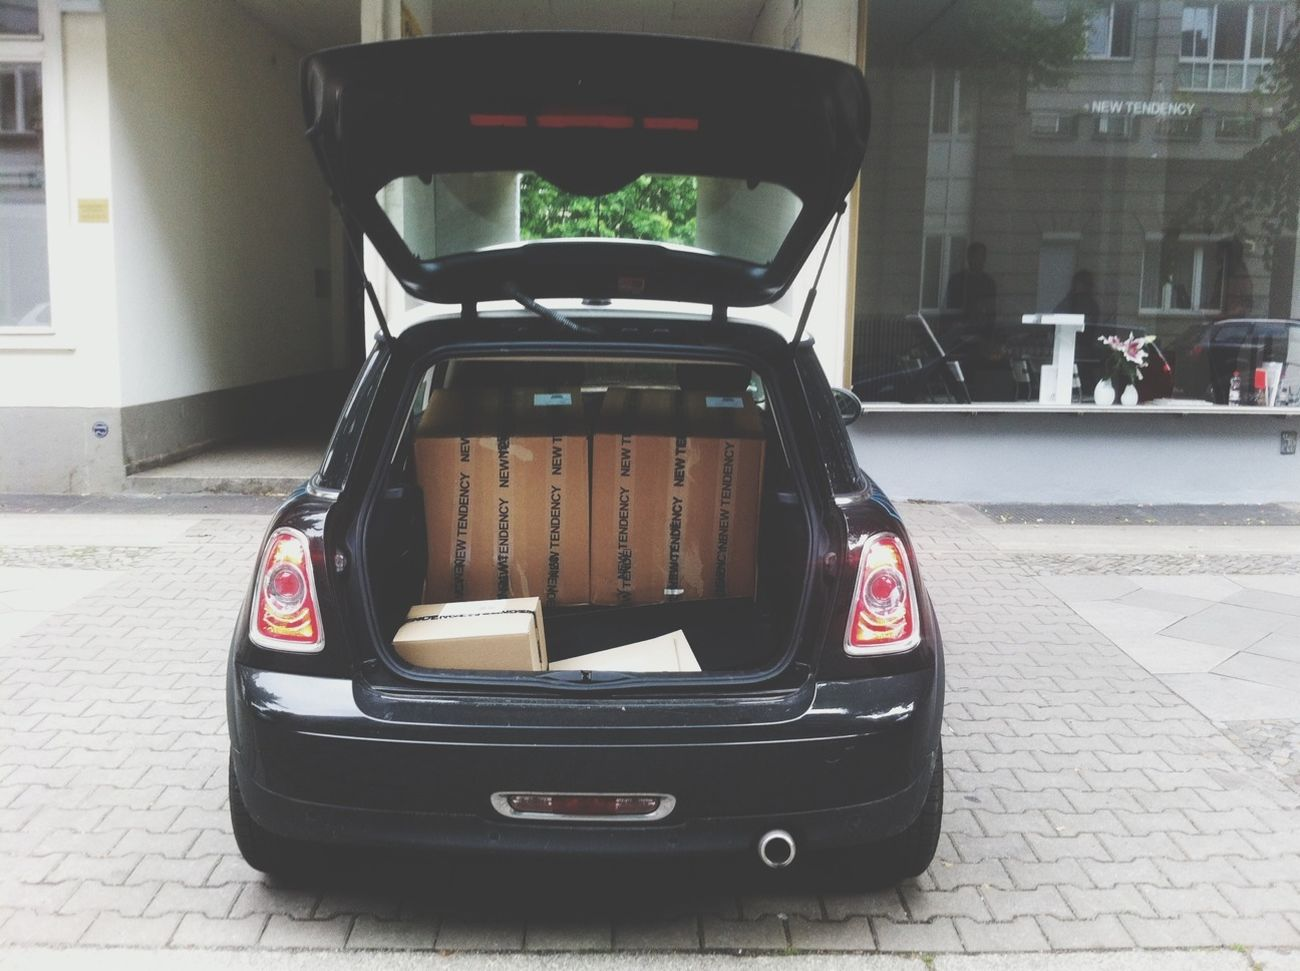 How many META side tables fit in a Mini? -Two